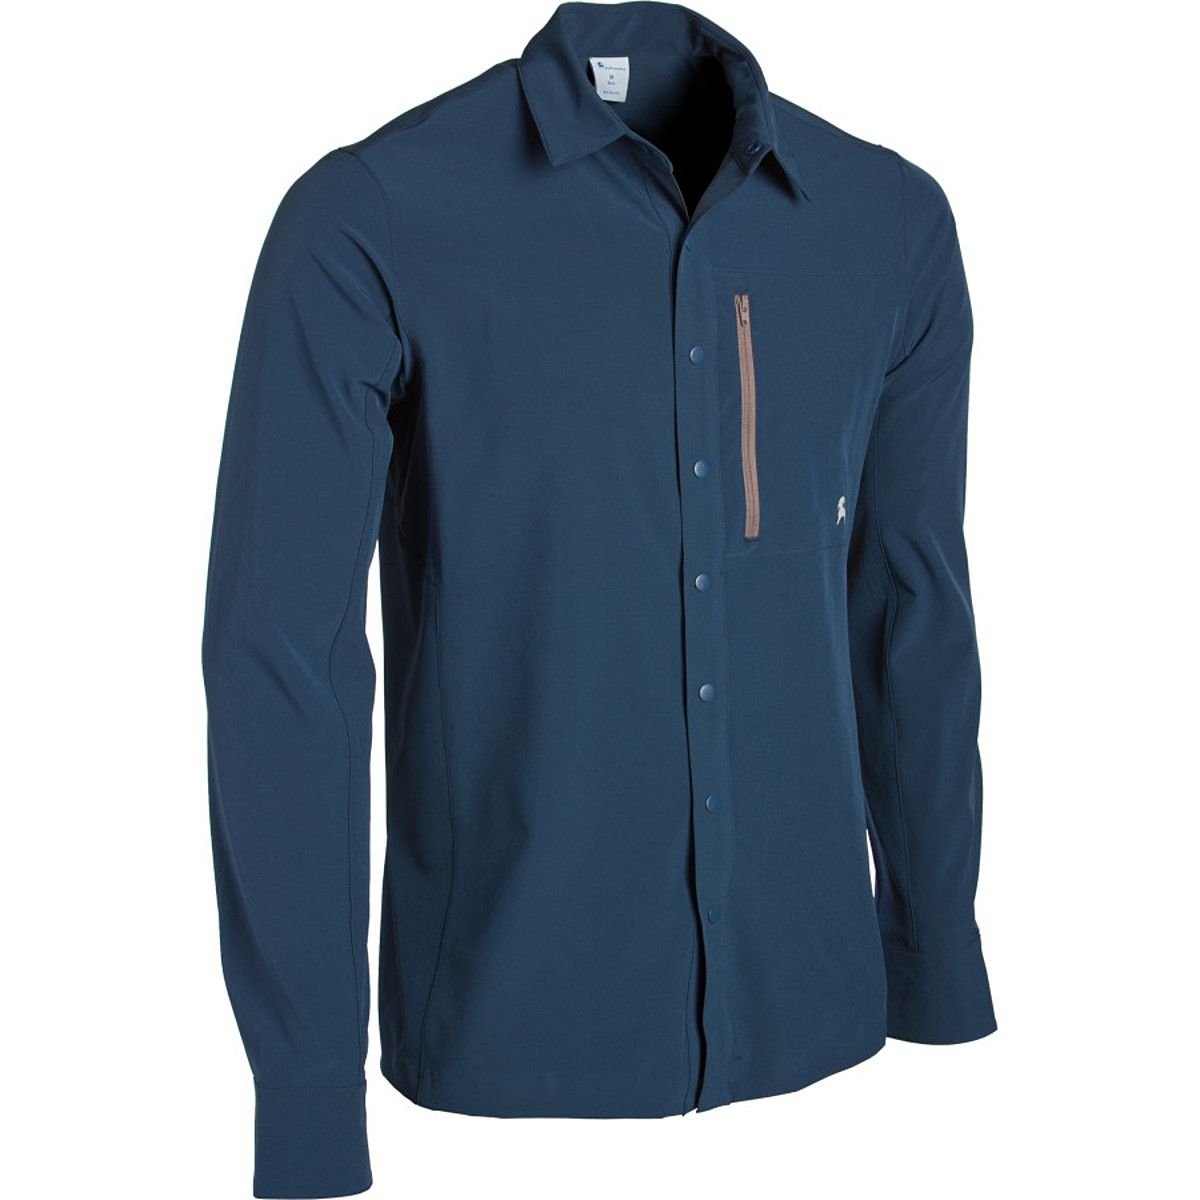 Backcountry.com Provo Shirt - Long-Sleeve